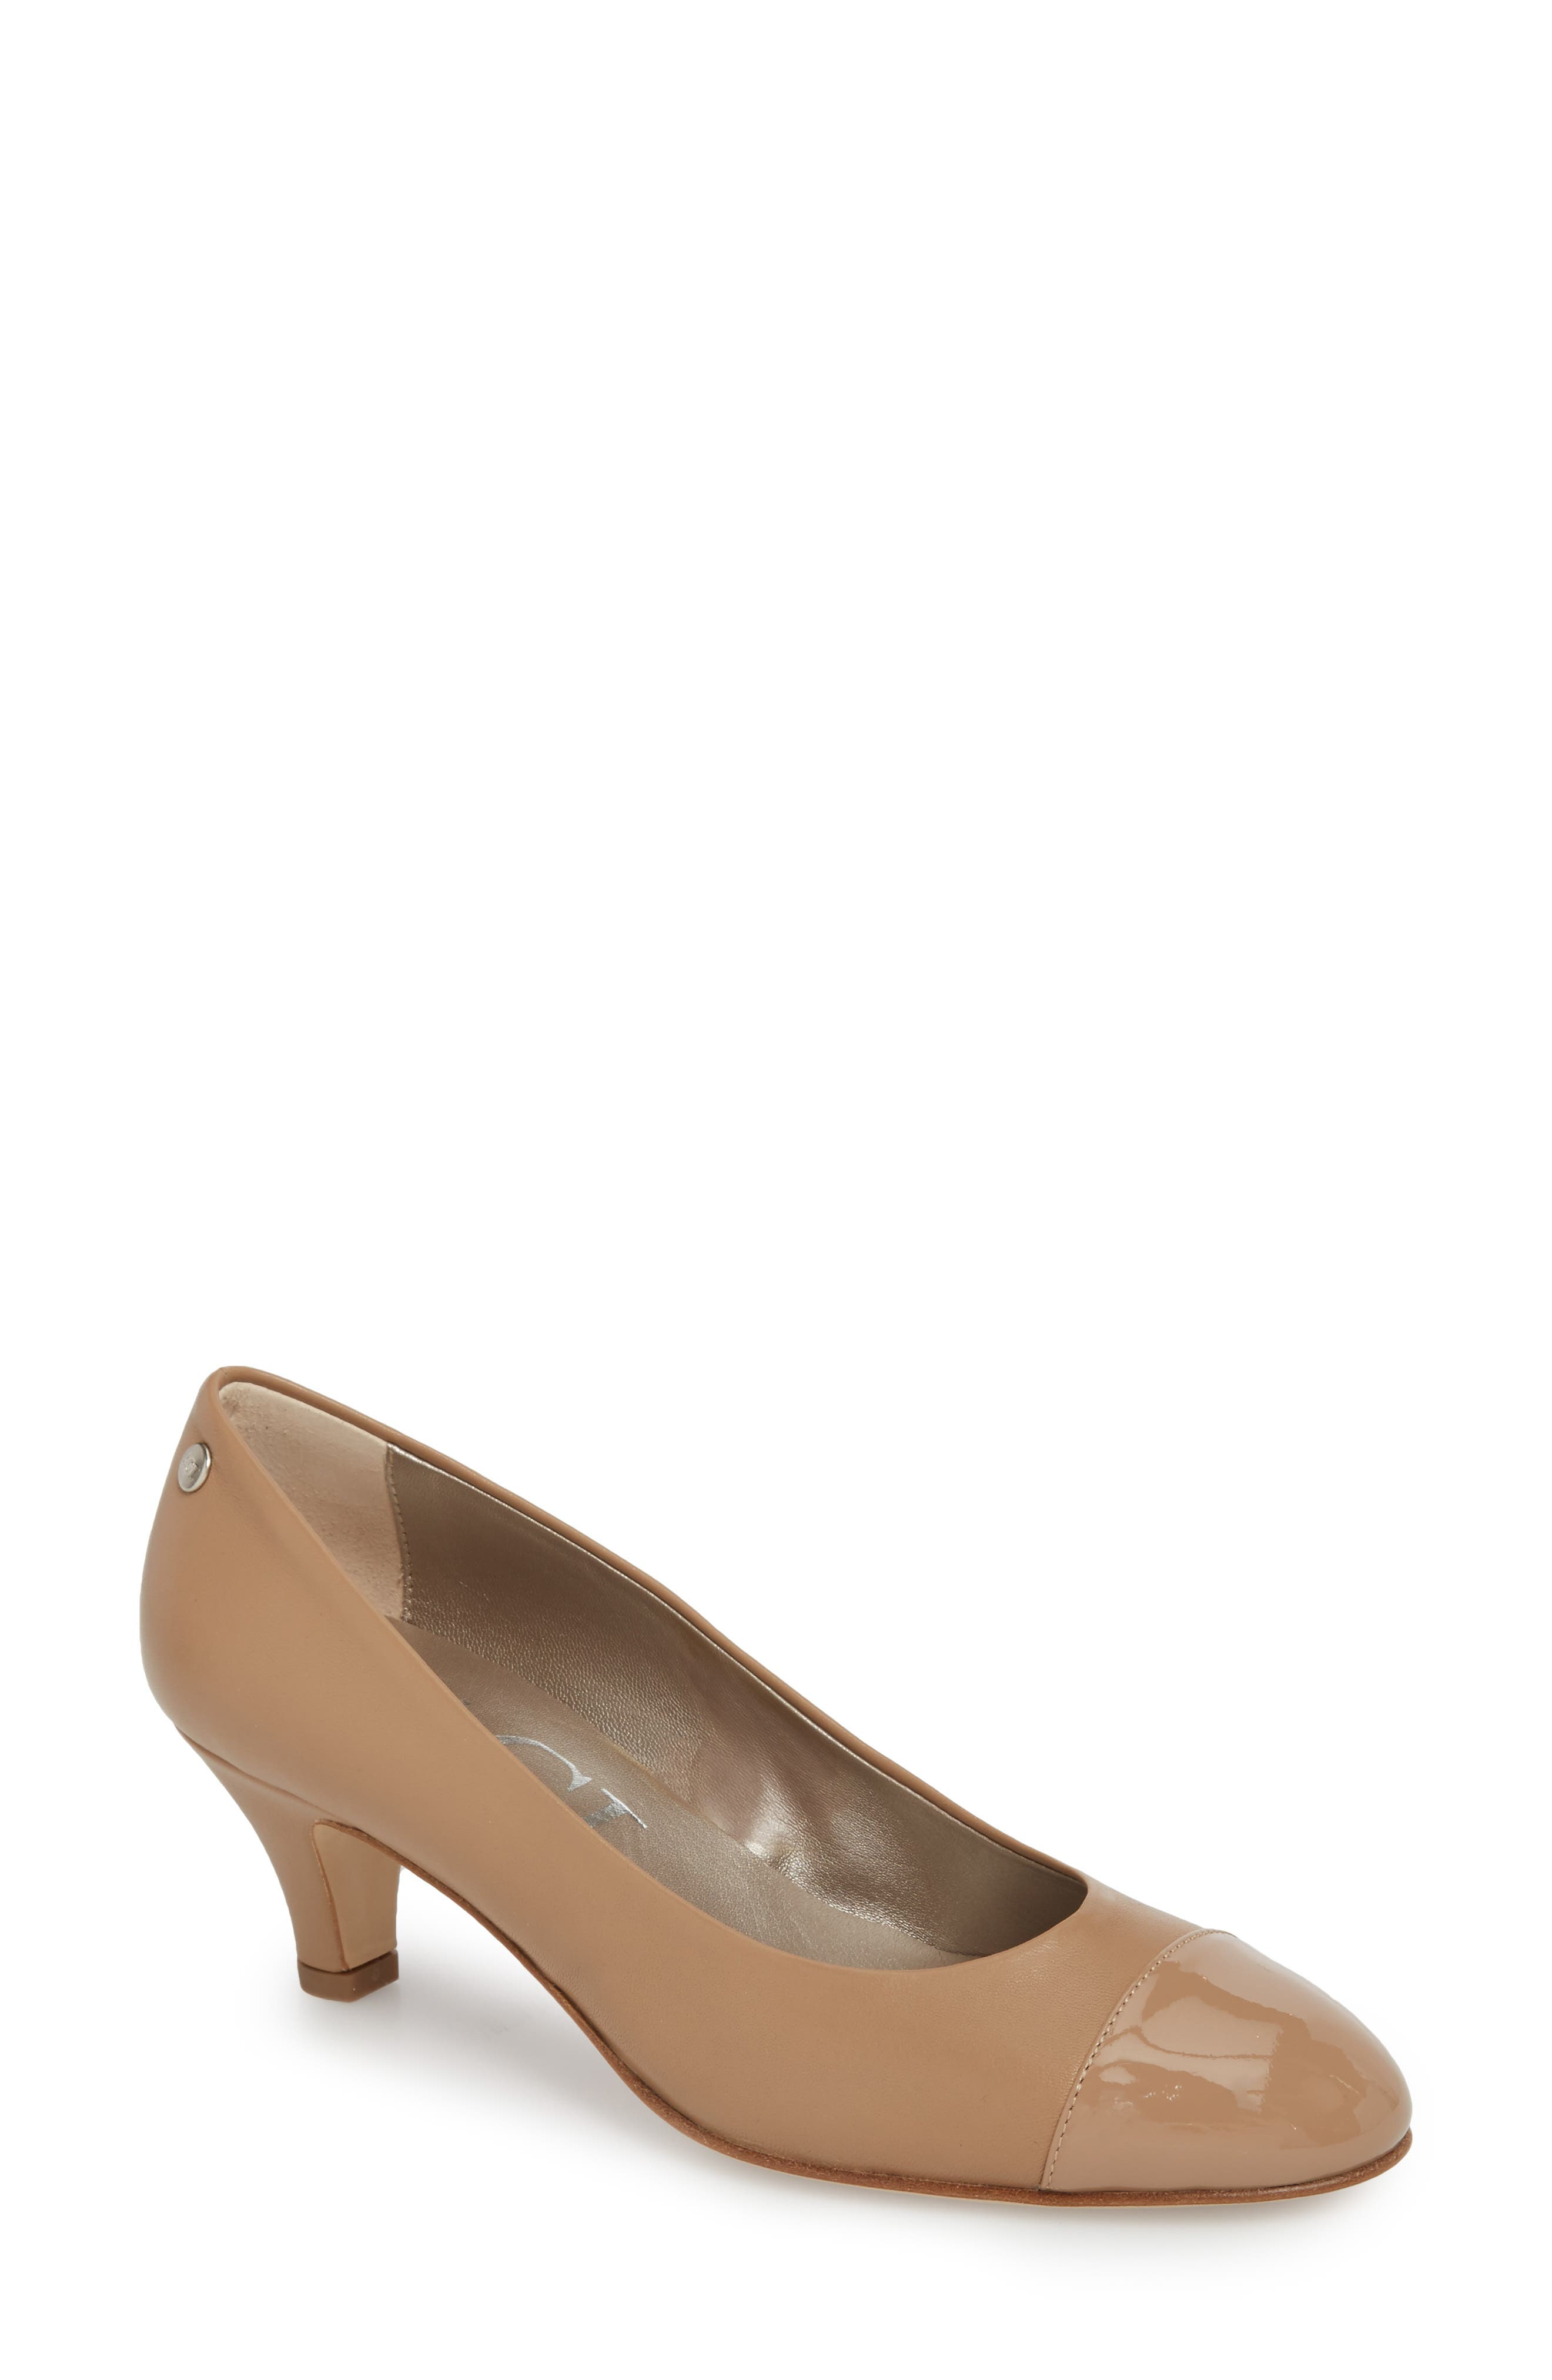 Alternate Image 1 Selected - AGL Cap Toe Pump (Women)